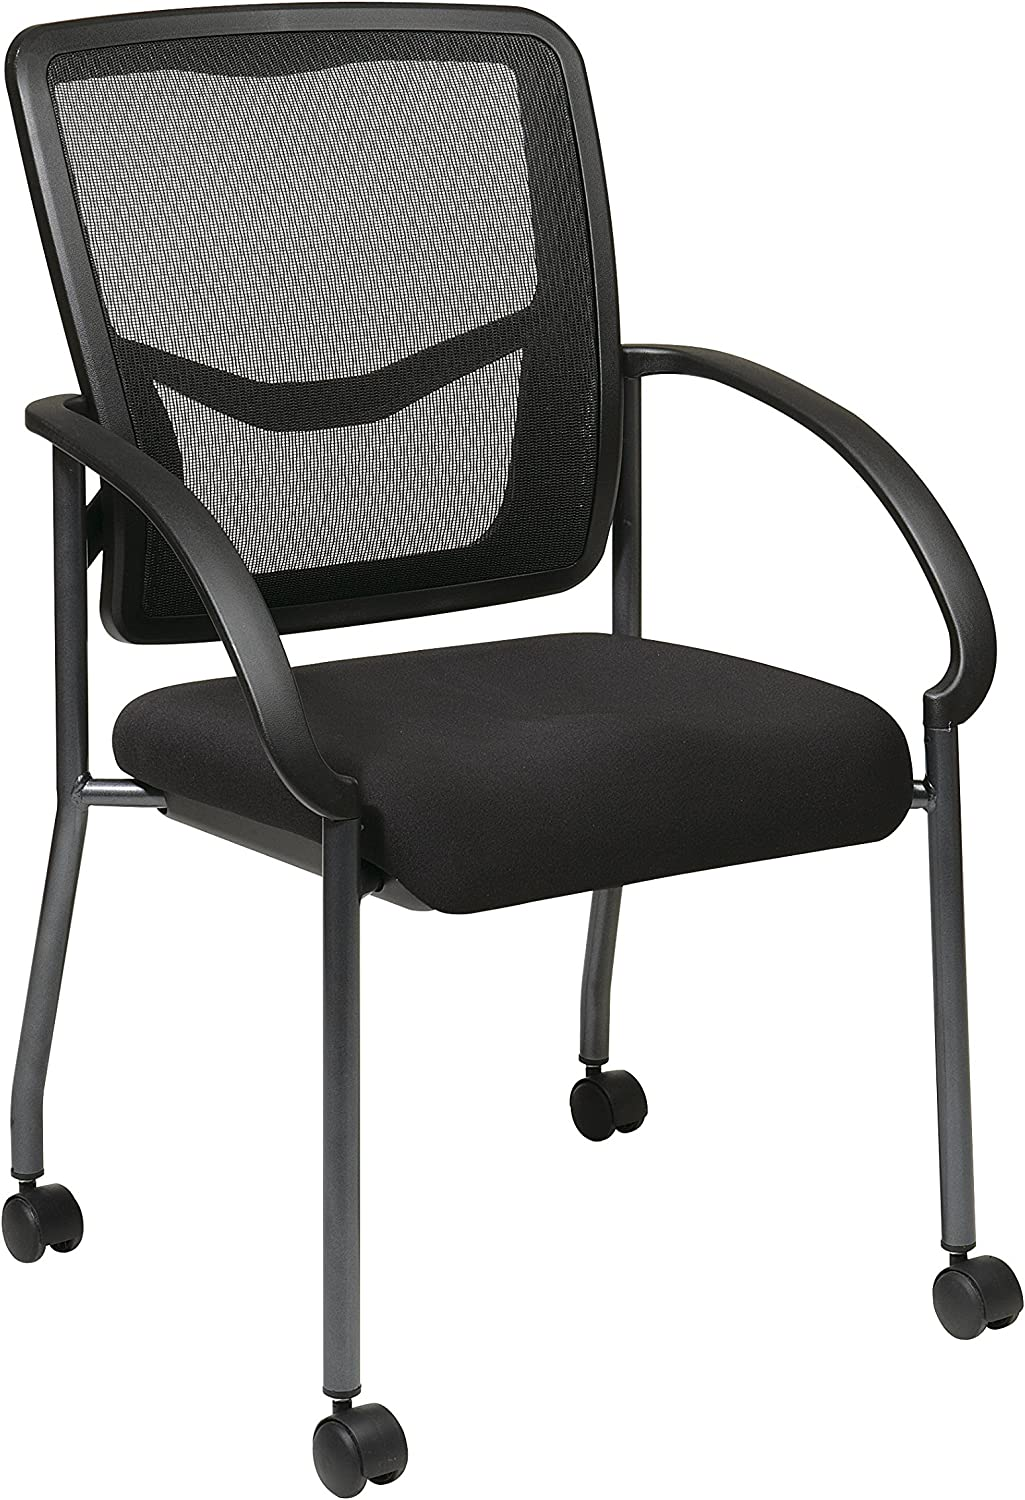 Office Star Breathable ProGrid Back and Padded Coal FreeFlex Seat, Contour Arms, Titanium Finish Stacking Visitors Chair with Casters, Black: Furniture & Decor